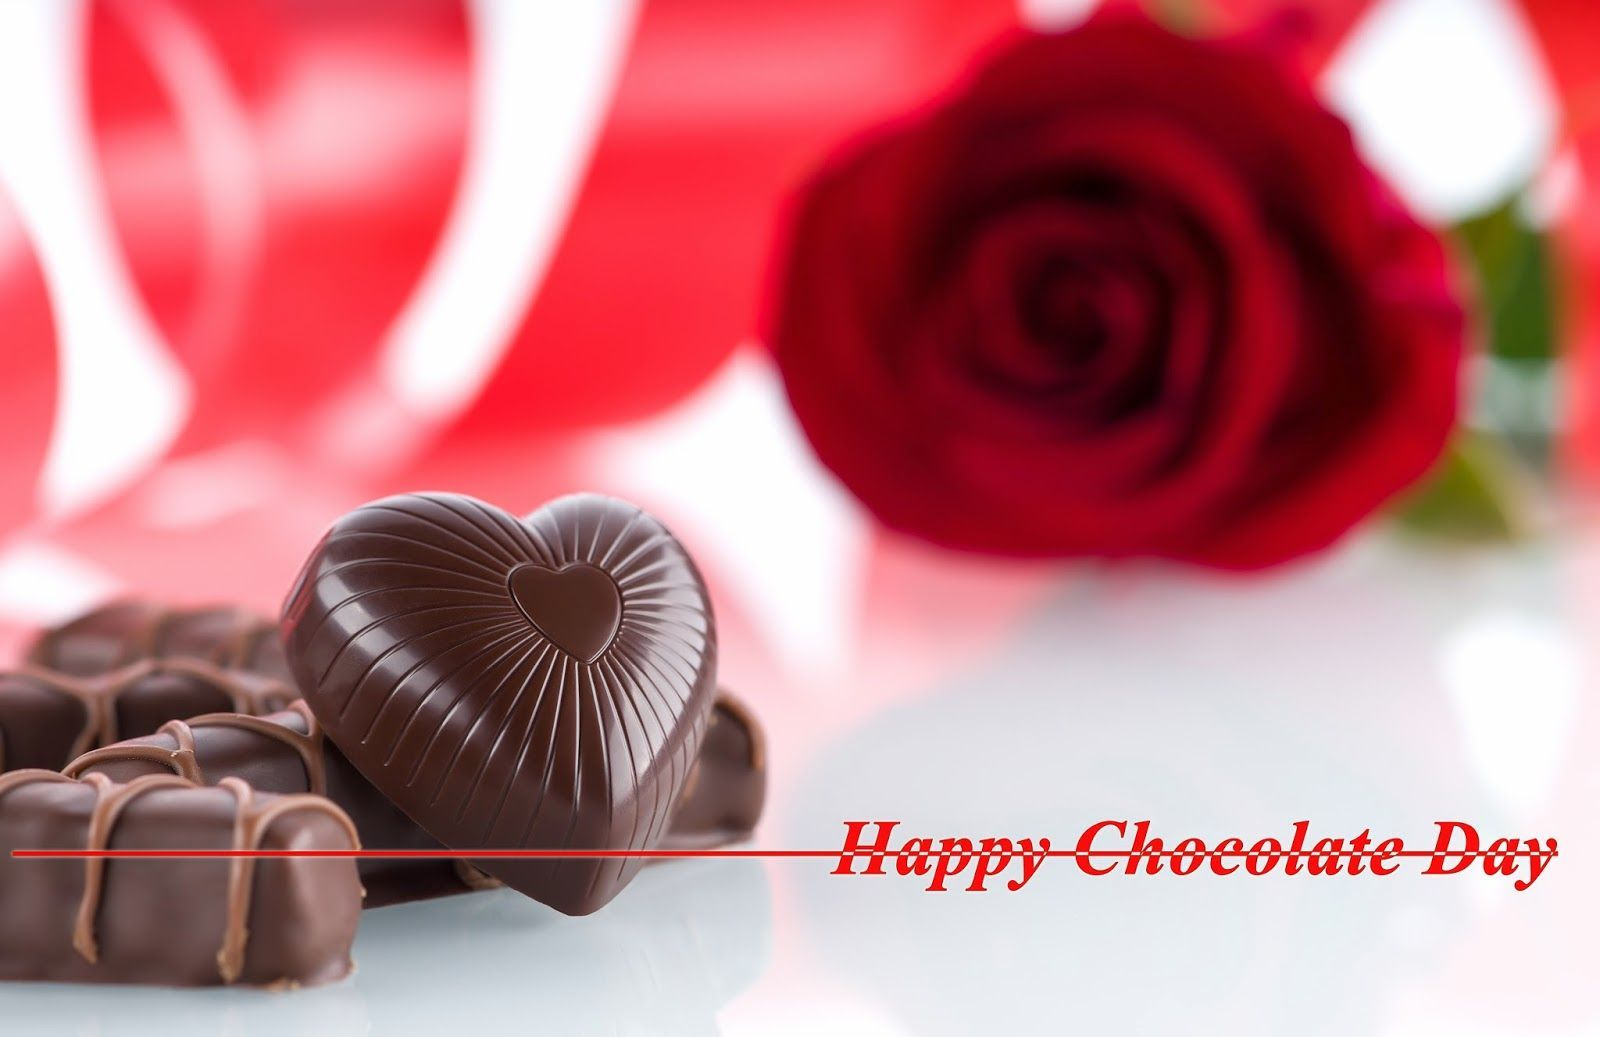 Happy Chocolate Day Wallpapers Top Free Happy Chocolate Day Backgrounds Wallpaperaccess